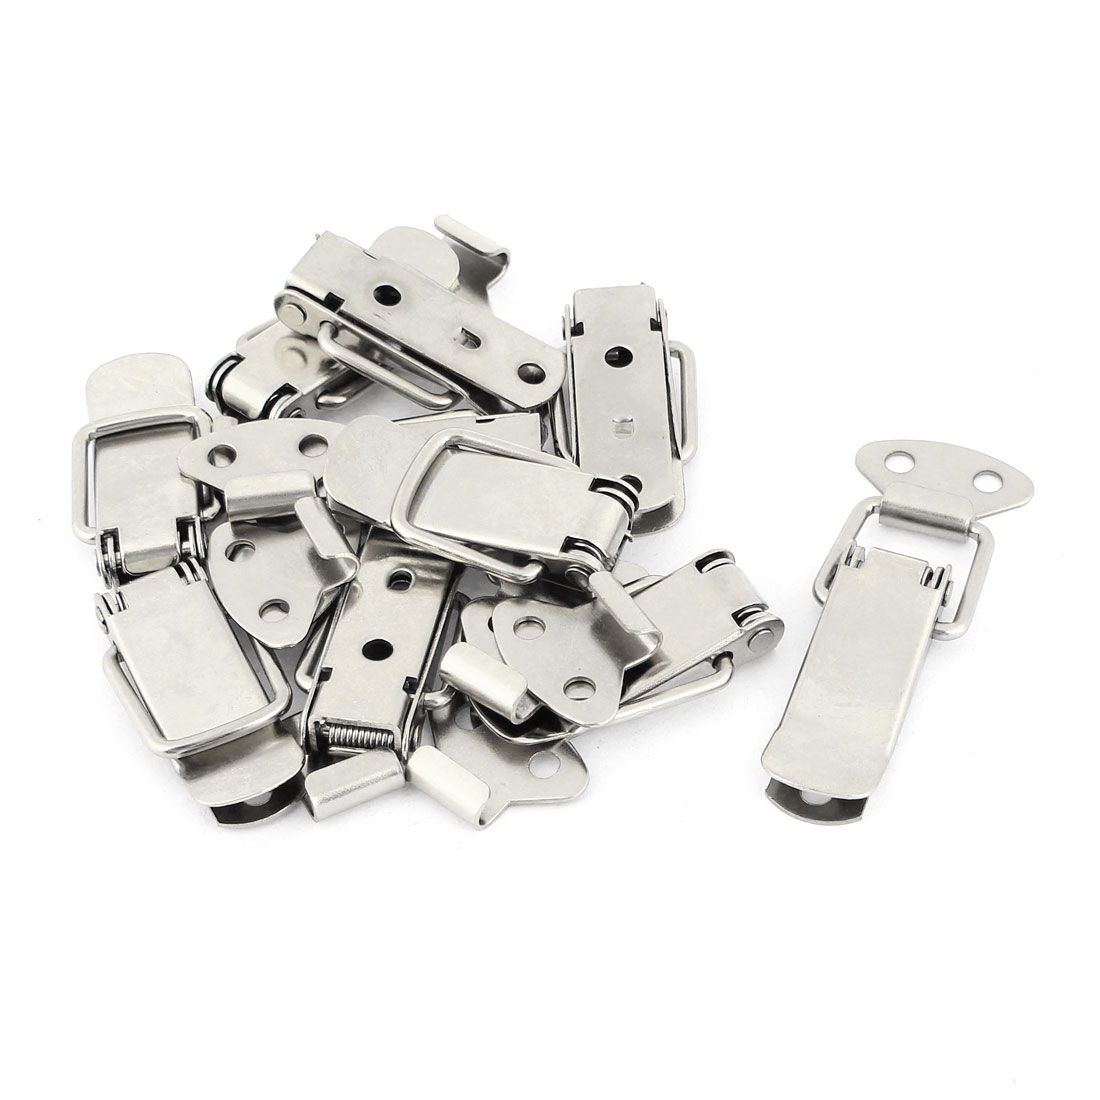 10sets Silver Tone 4mm Bore Diameter Spring Loaded Toggle Latches